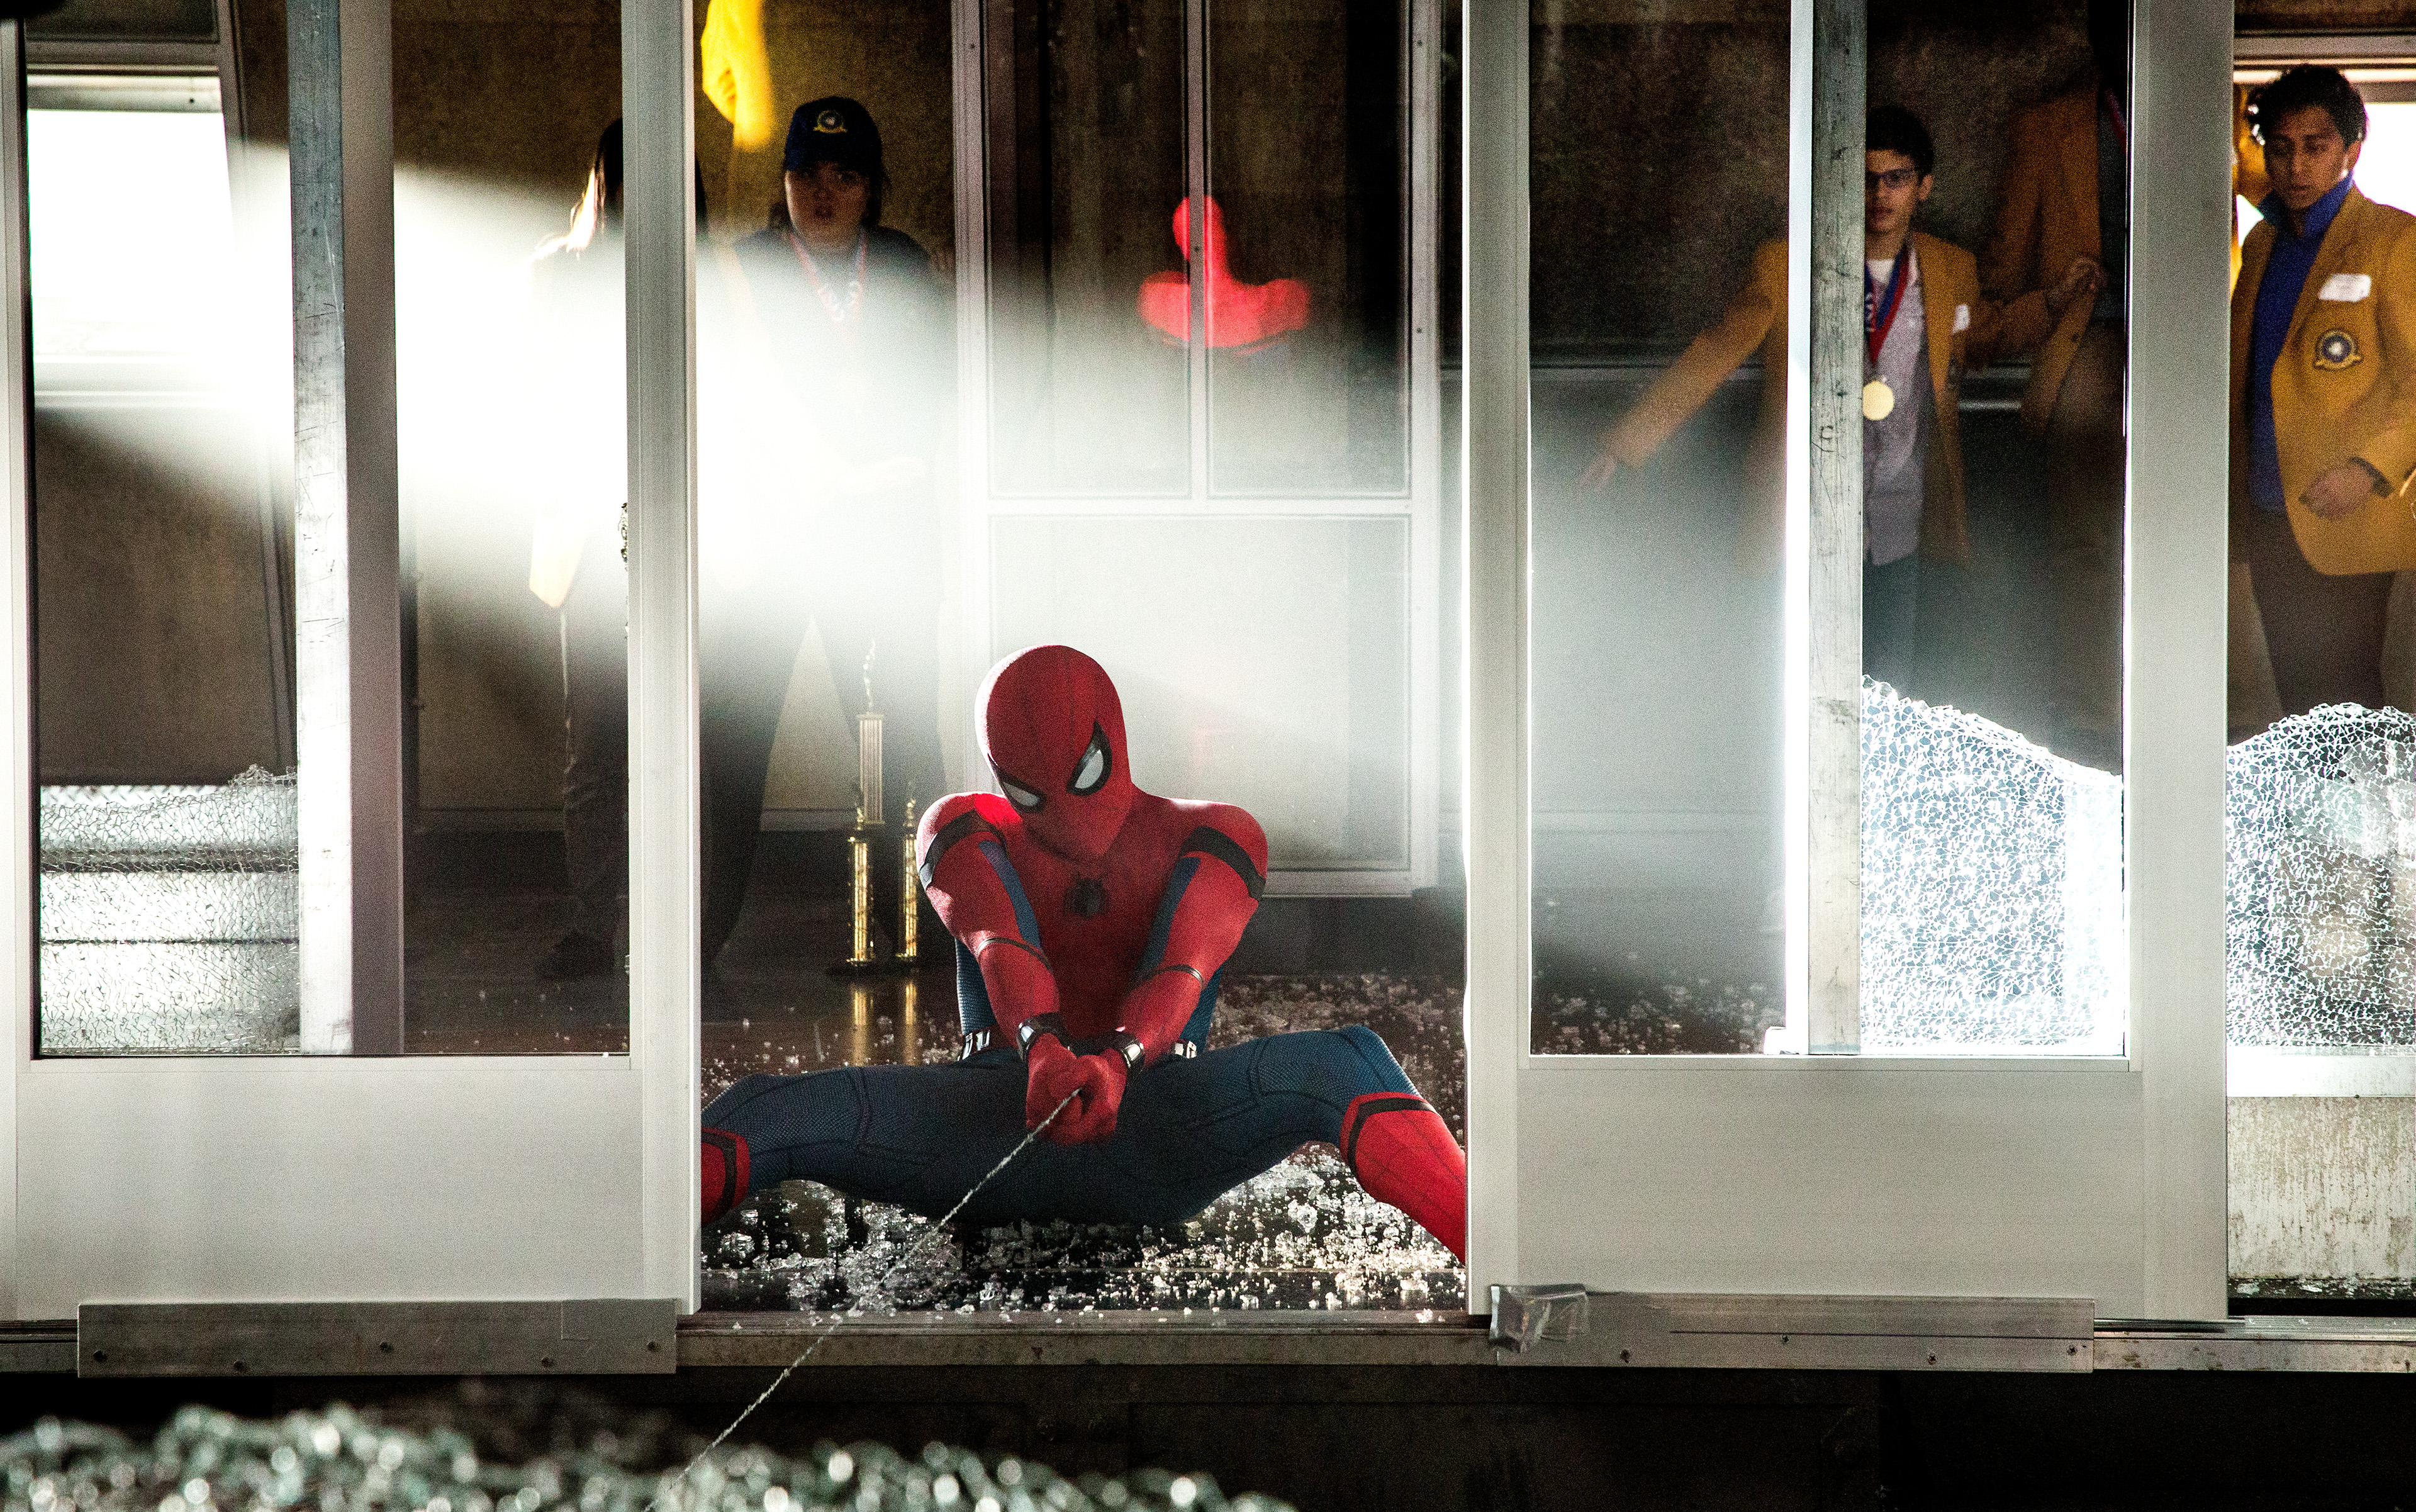 Spider-Man: Homecoming has the best post-credits scene since The Avengers